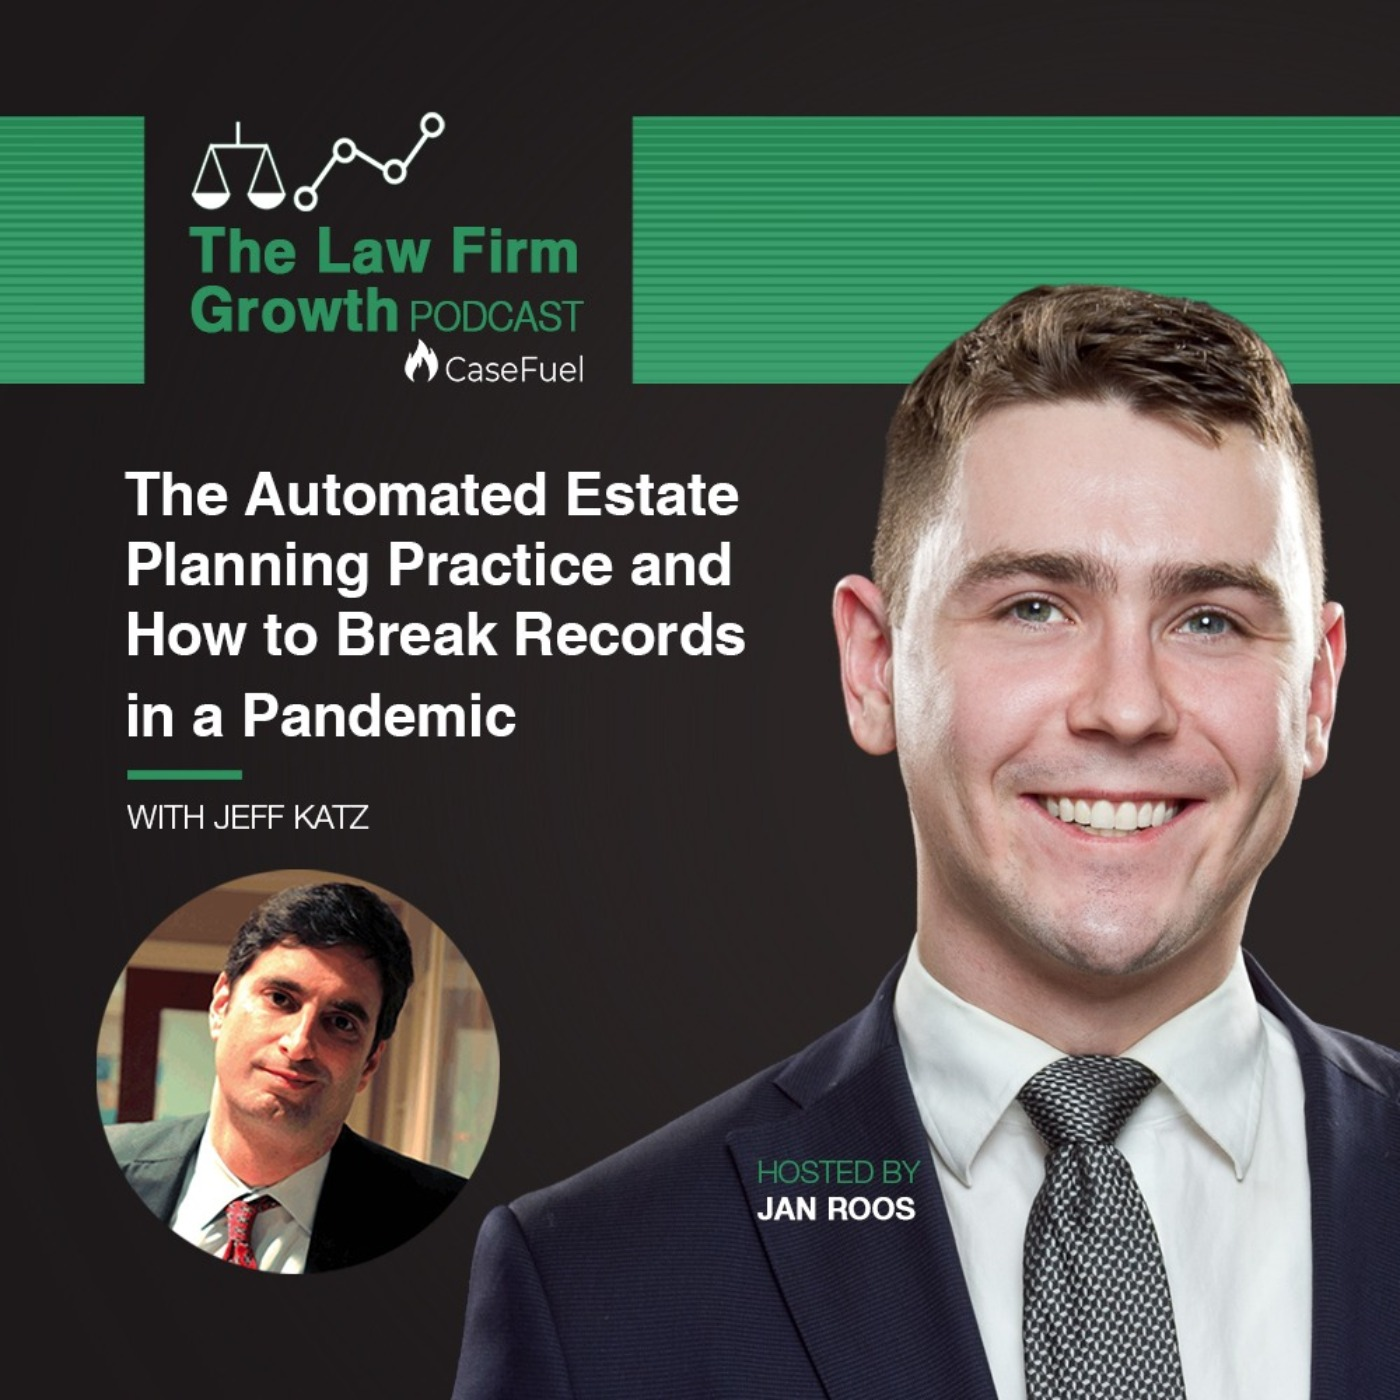 The Automated Estate Planning Practice and How to Break Records in a Pandemic with Jeff Katz